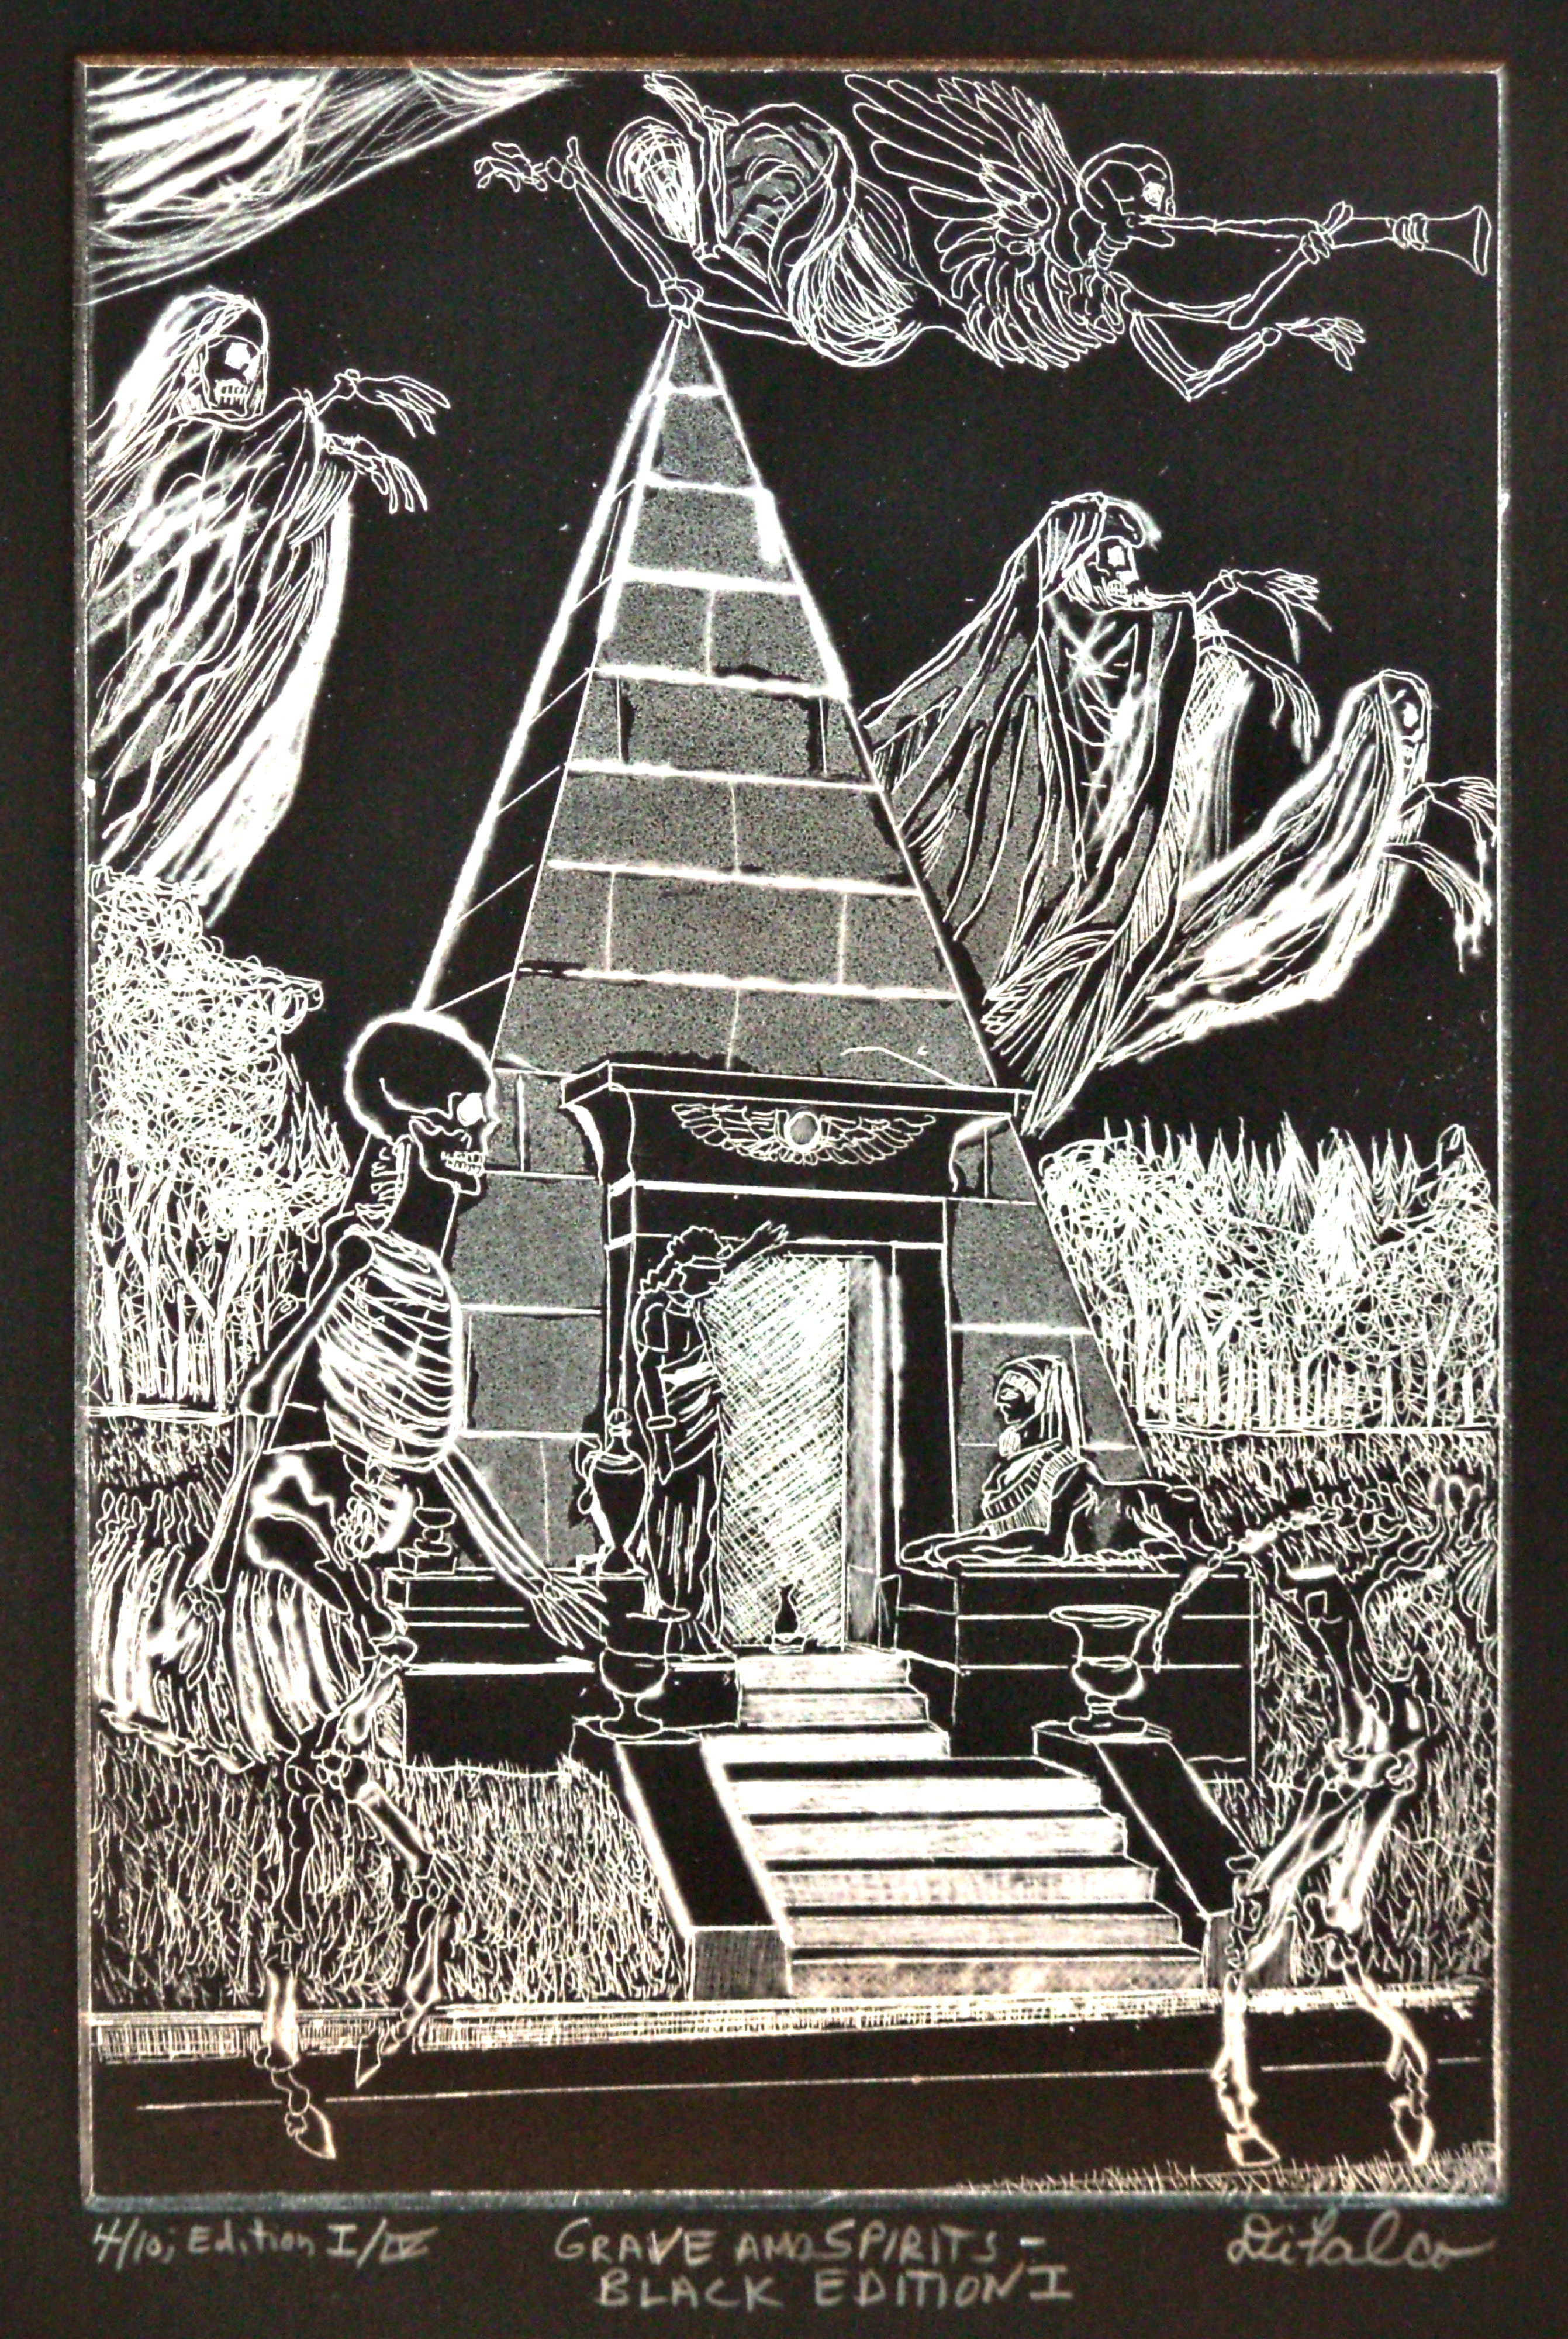 Jerry  Di Falco Artwork GRAVE AND SPIRITS IN NEW ORLEANS AT BRUNSWIG TOMB, 2013 Etching, Ethereal